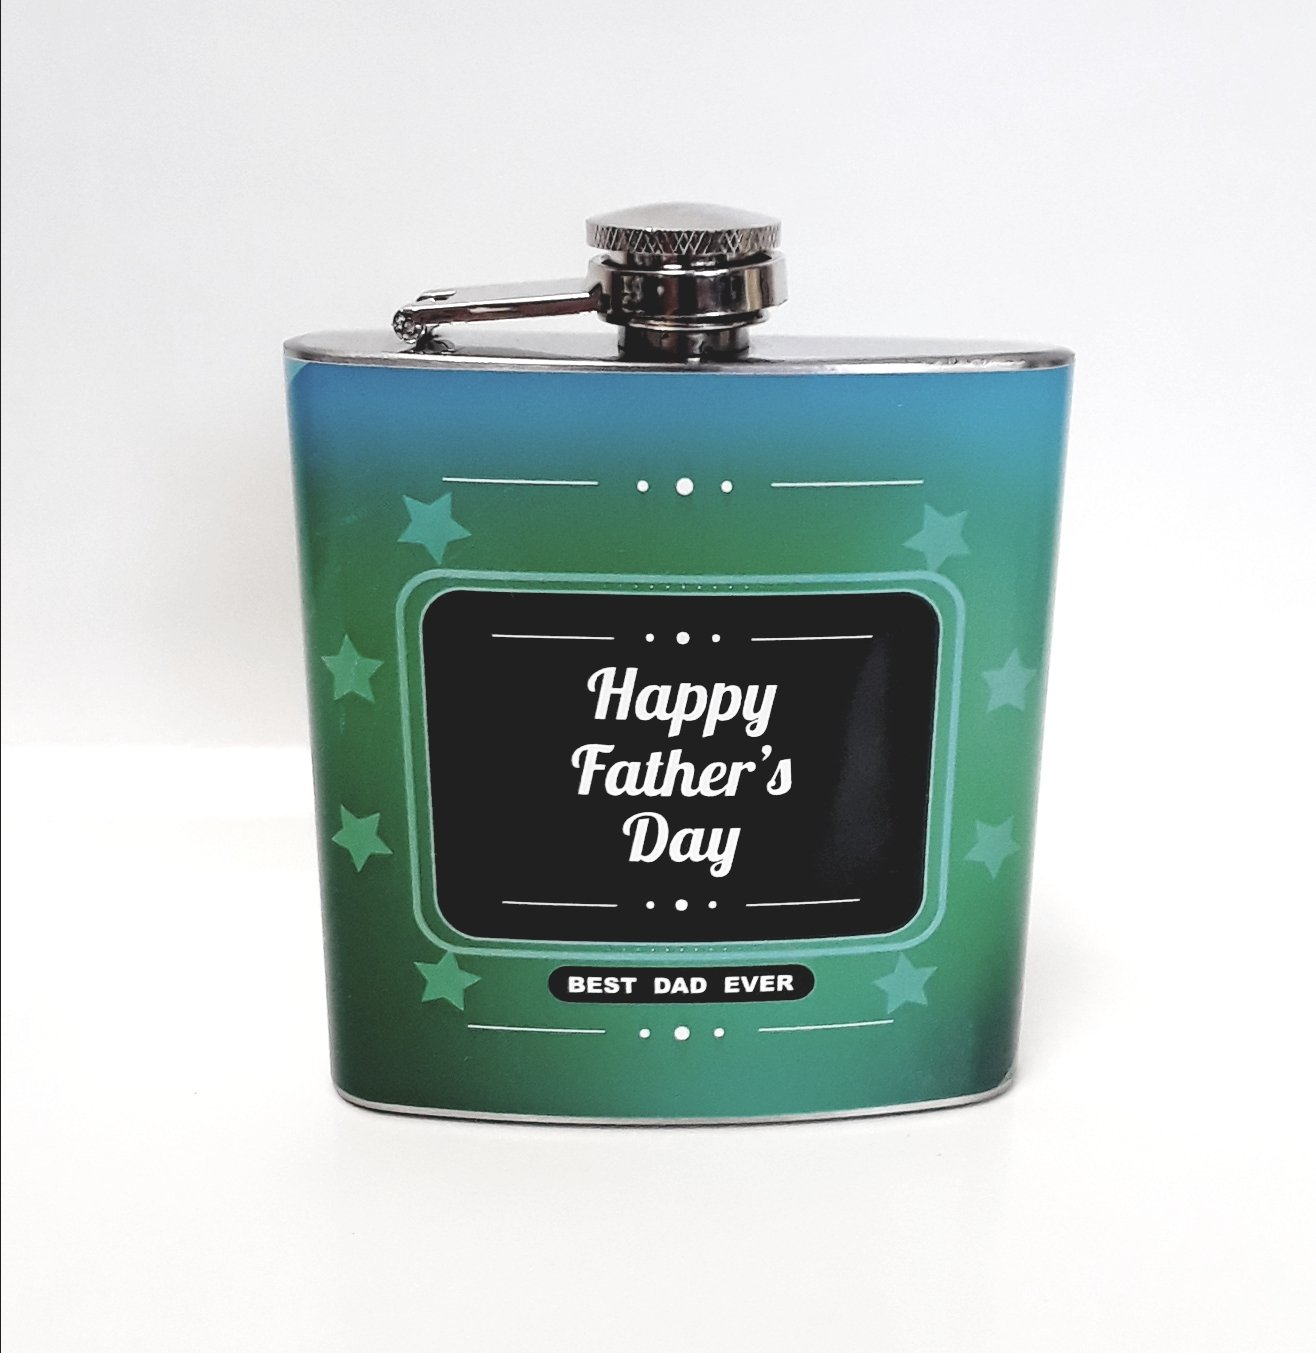 Best Dad Ever Hip Flask, 6 oz